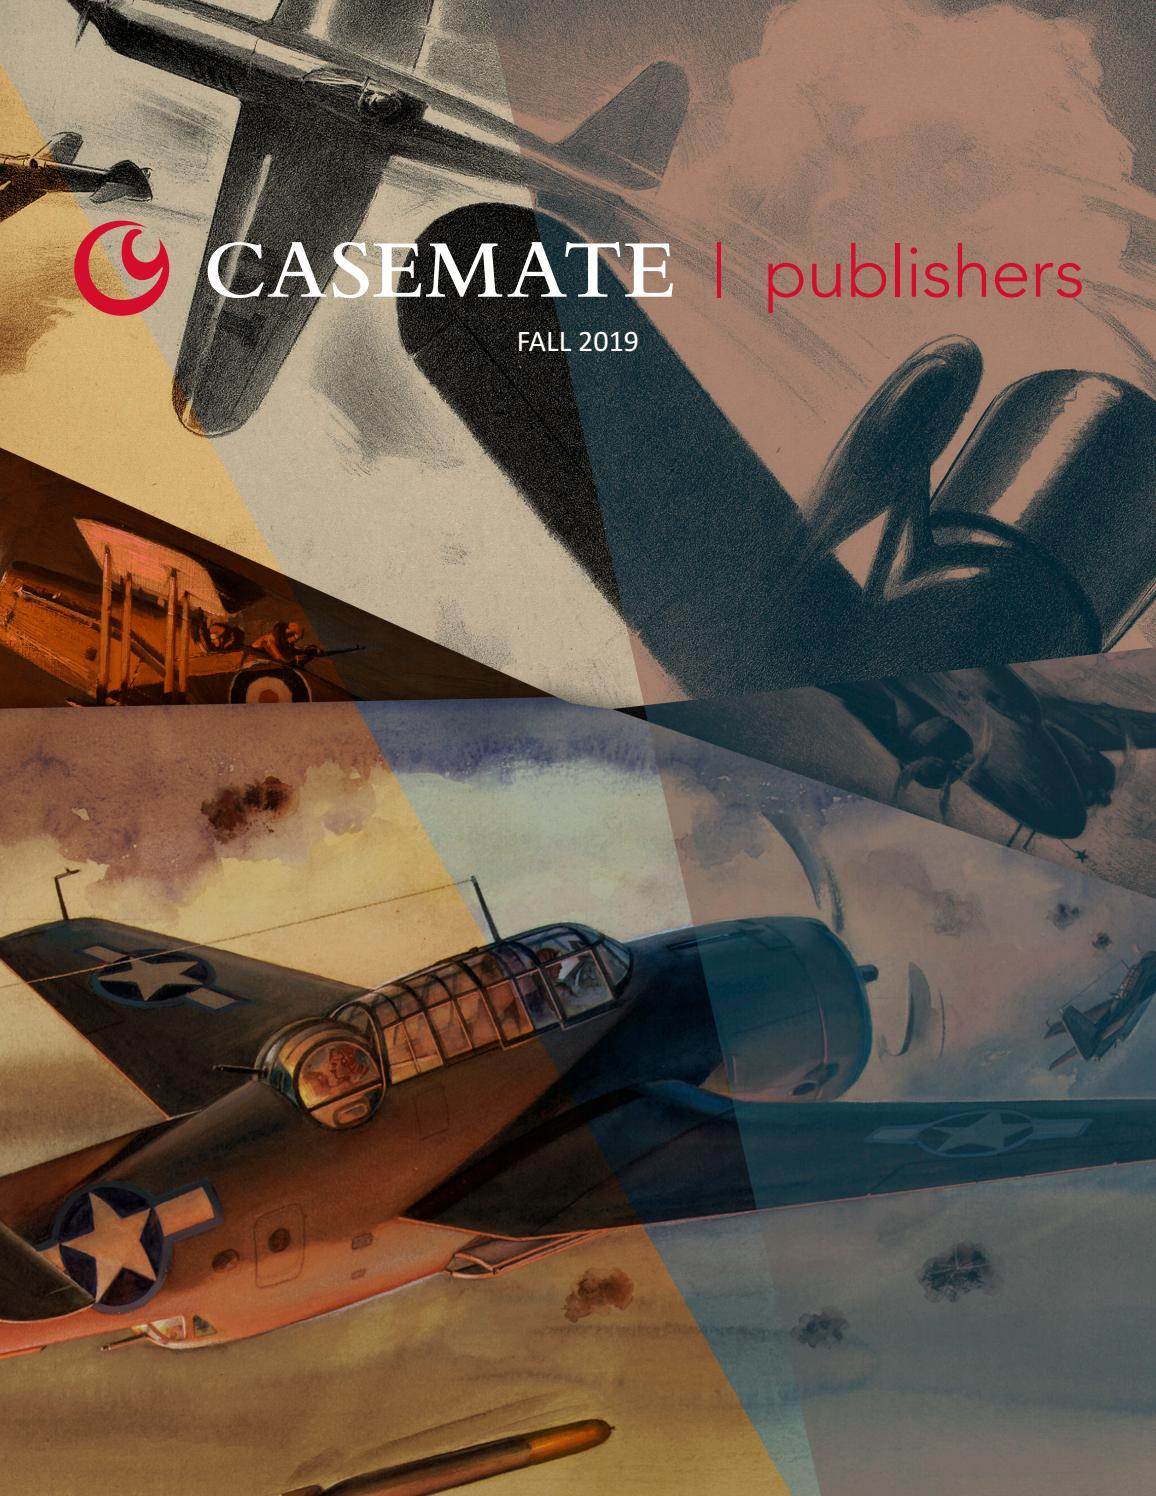 Casemate By Fall - Issuu 2019 Ltd Publishers